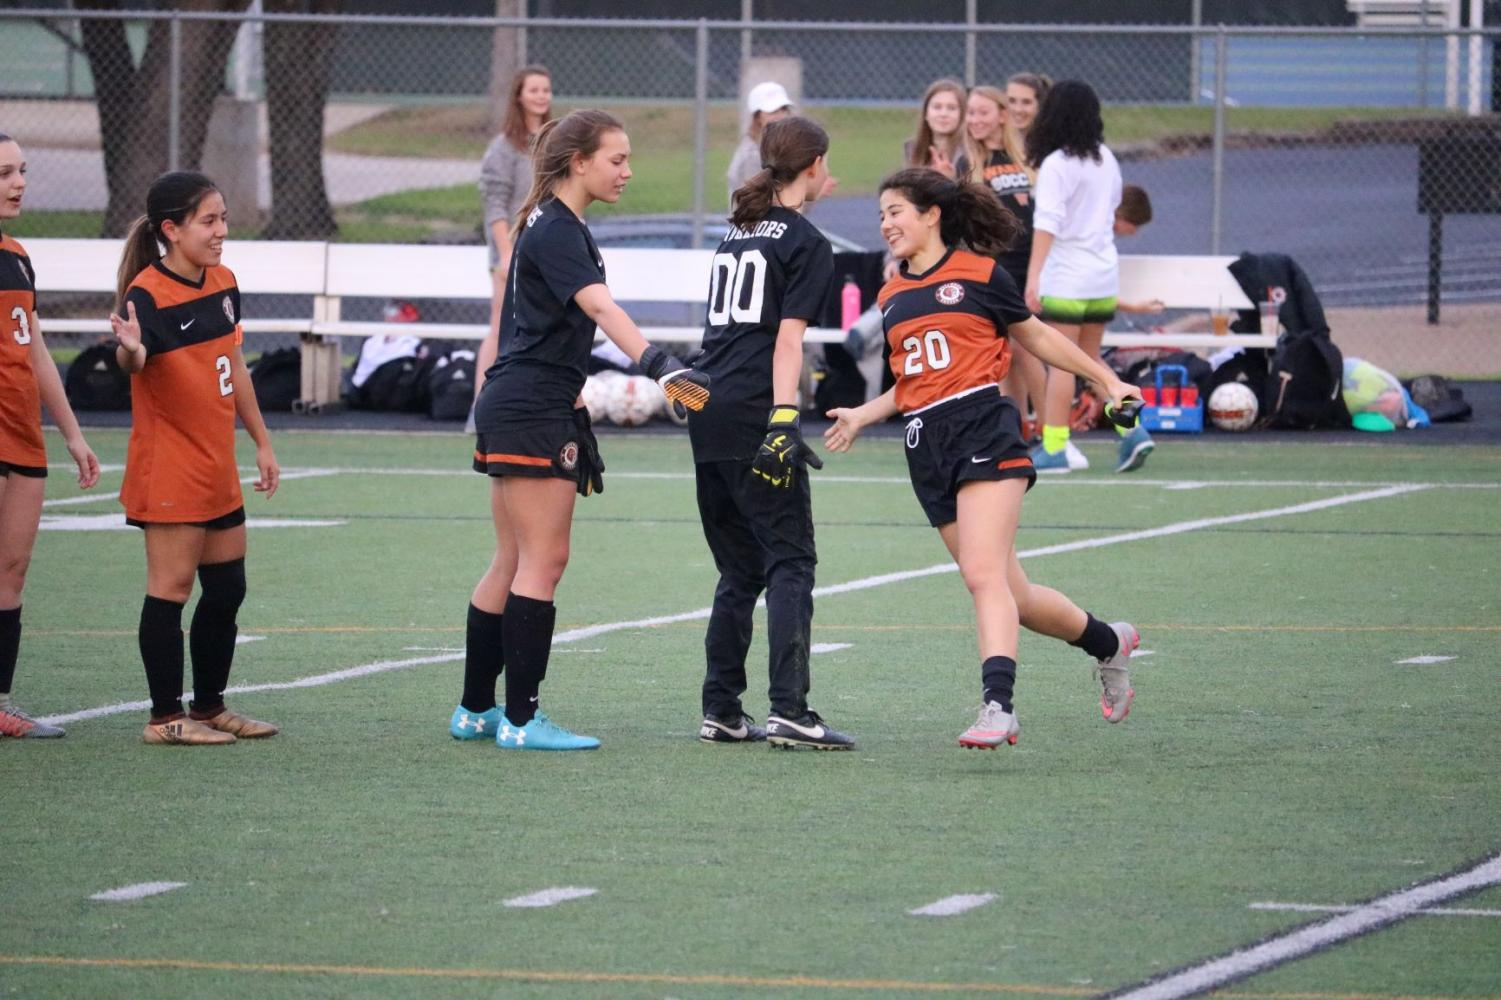 Jessica+Lane+%2721+high-fives+her+teammates+before+the+game.+